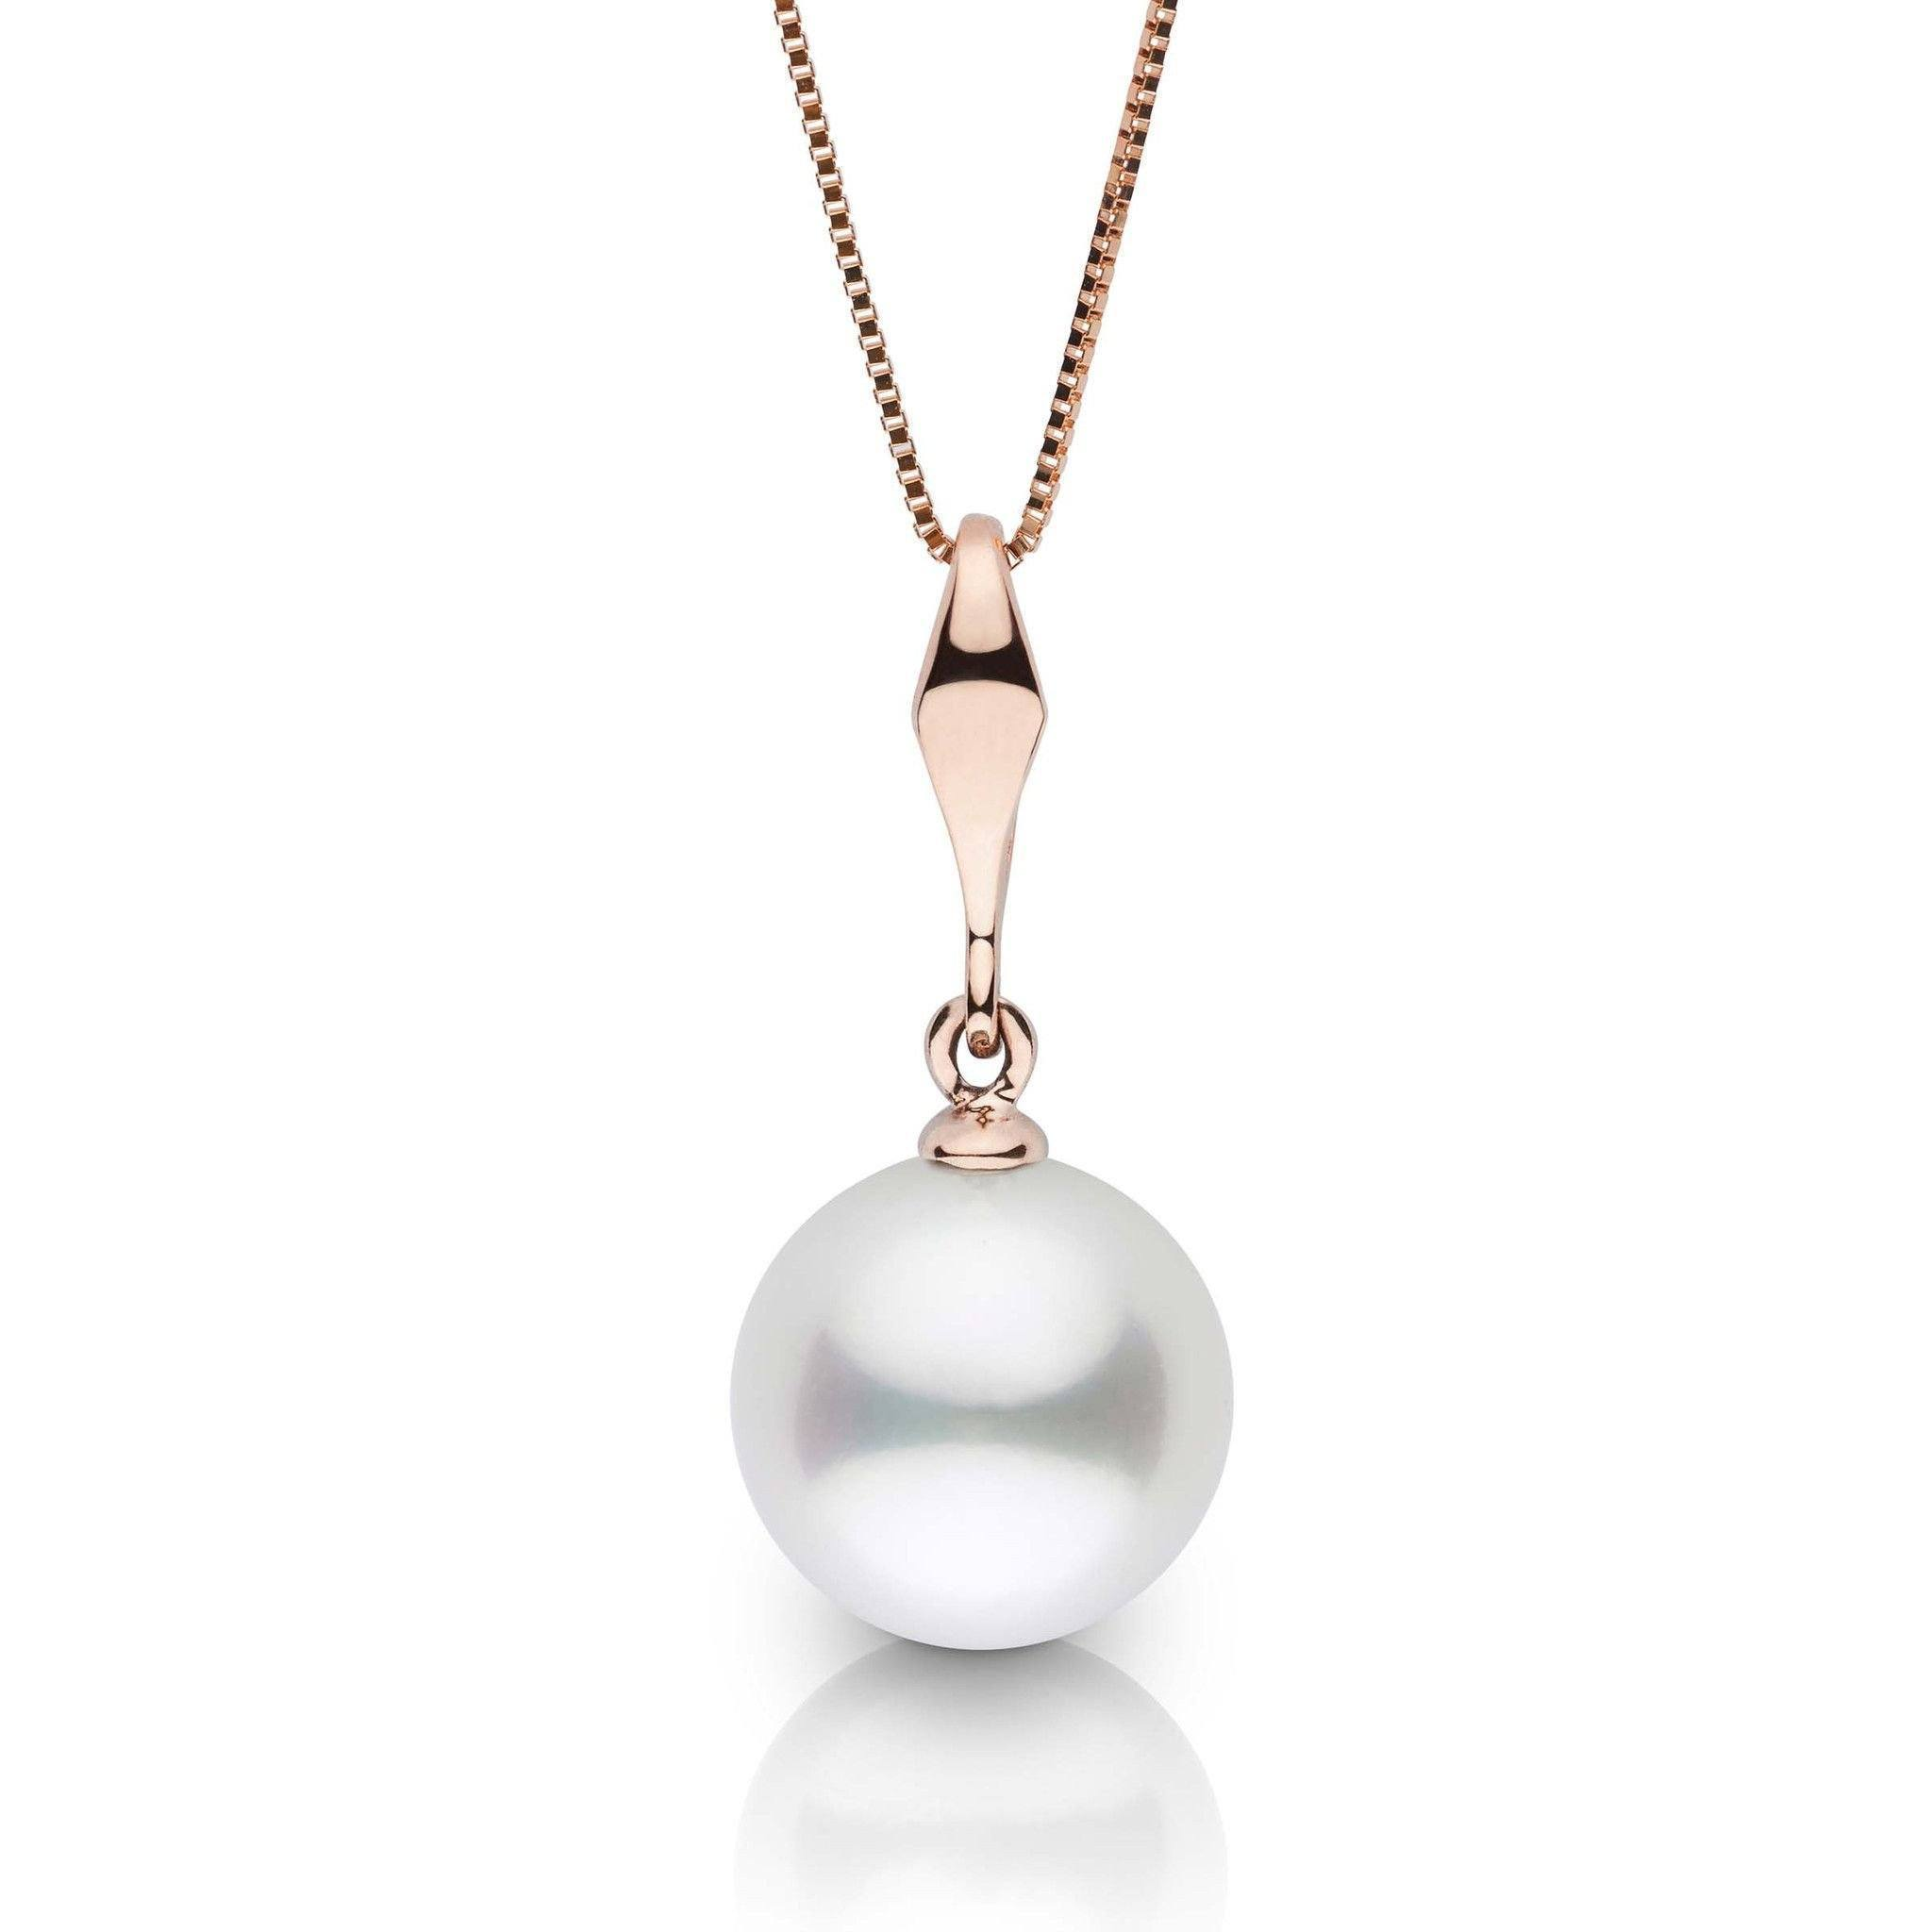 Essential Collection White 10.0-11.0 mm South Sea Pearl Pendant